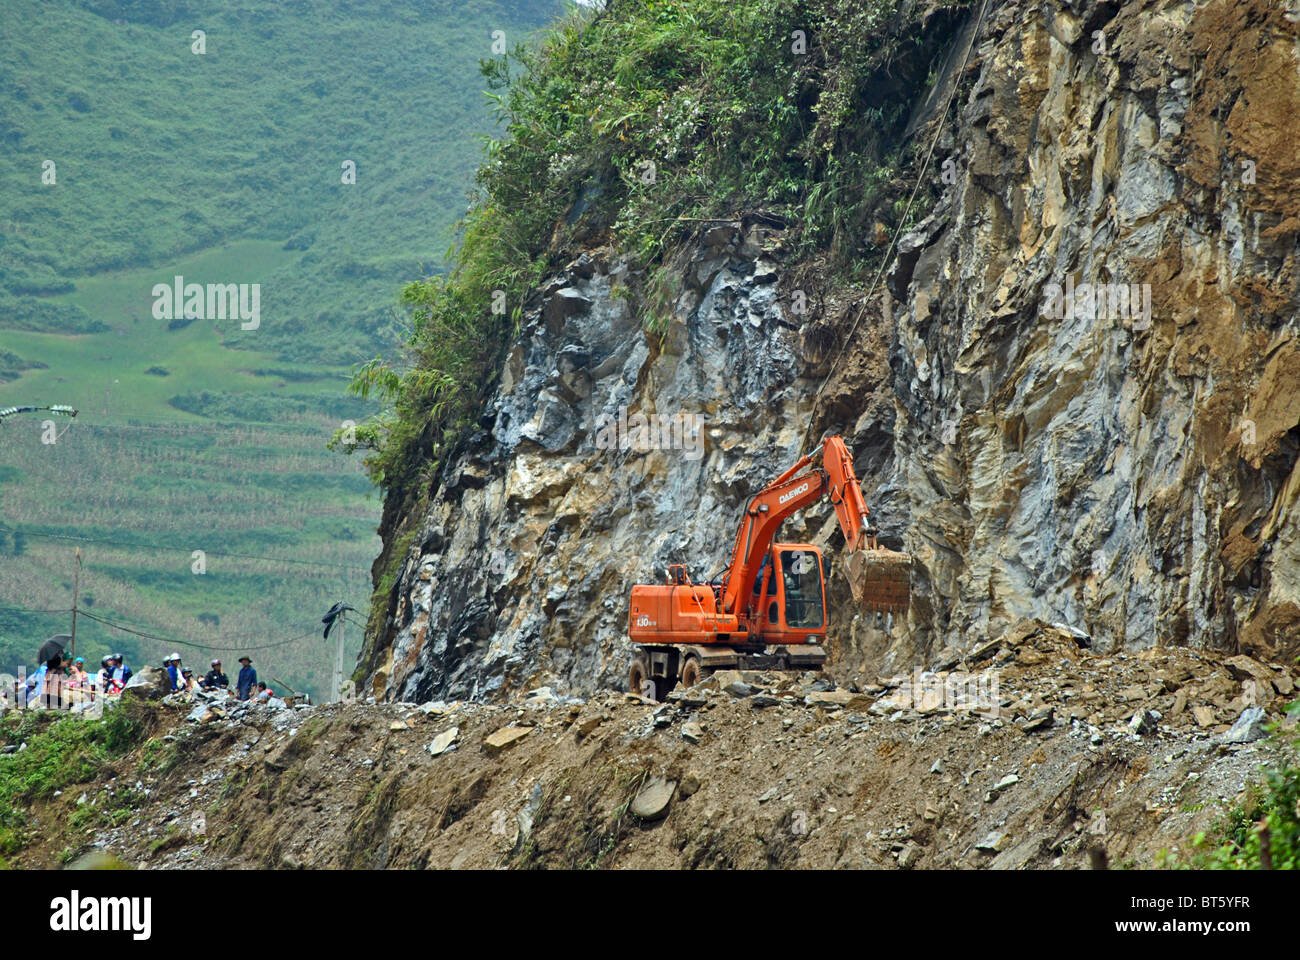 A digger clears rubble from a blocked road after landslides and rockfalls triggered by heavy rain in Sapa, Vietnam - Stock Image